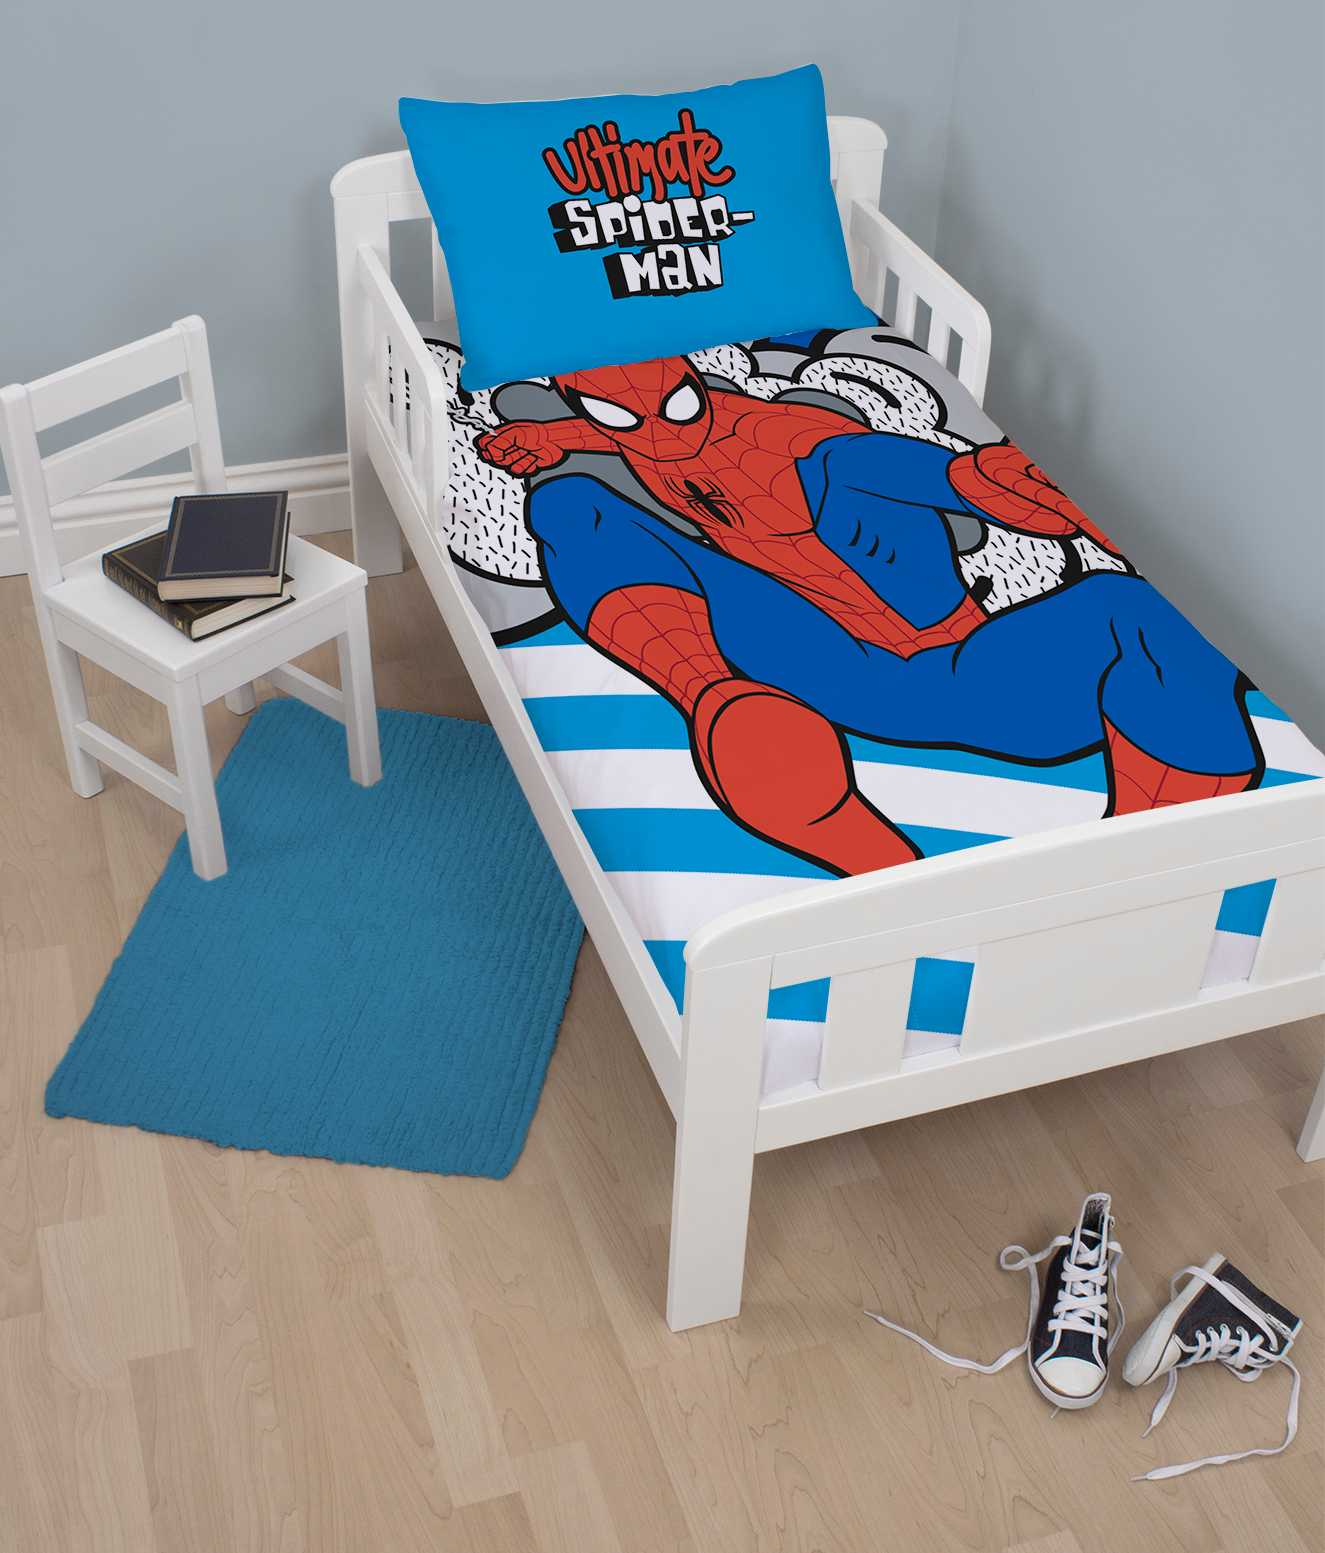 neu spiderman kinderbett gr e bettdecke bettbezug set jungen kinder blau zimmer ebay. Black Bedroom Furniture Sets. Home Design Ideas